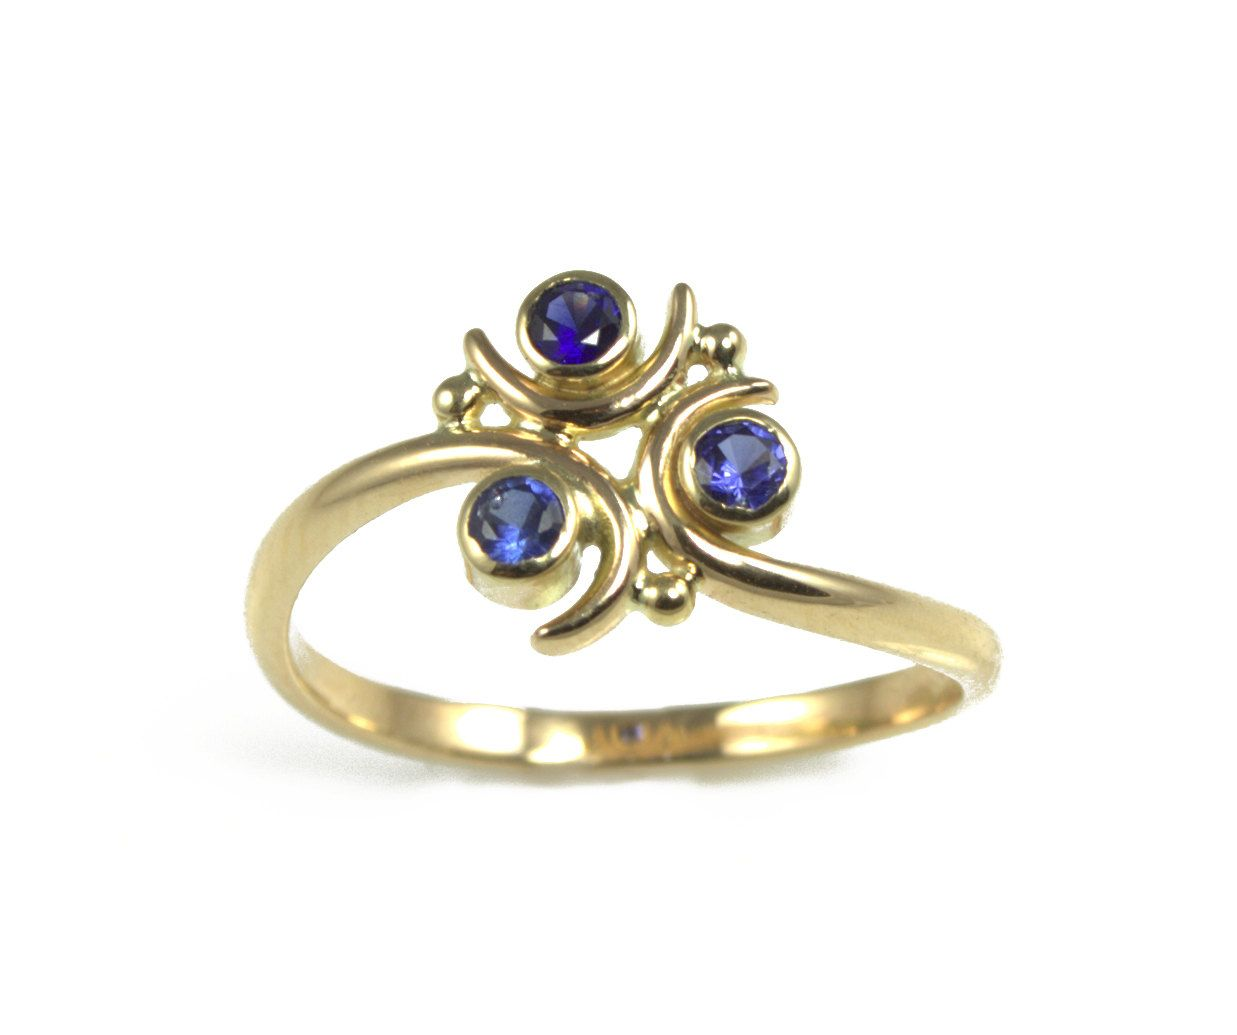 Zora Sapphire Engagement Ring in 14k Gold Geeky Ring Legend of